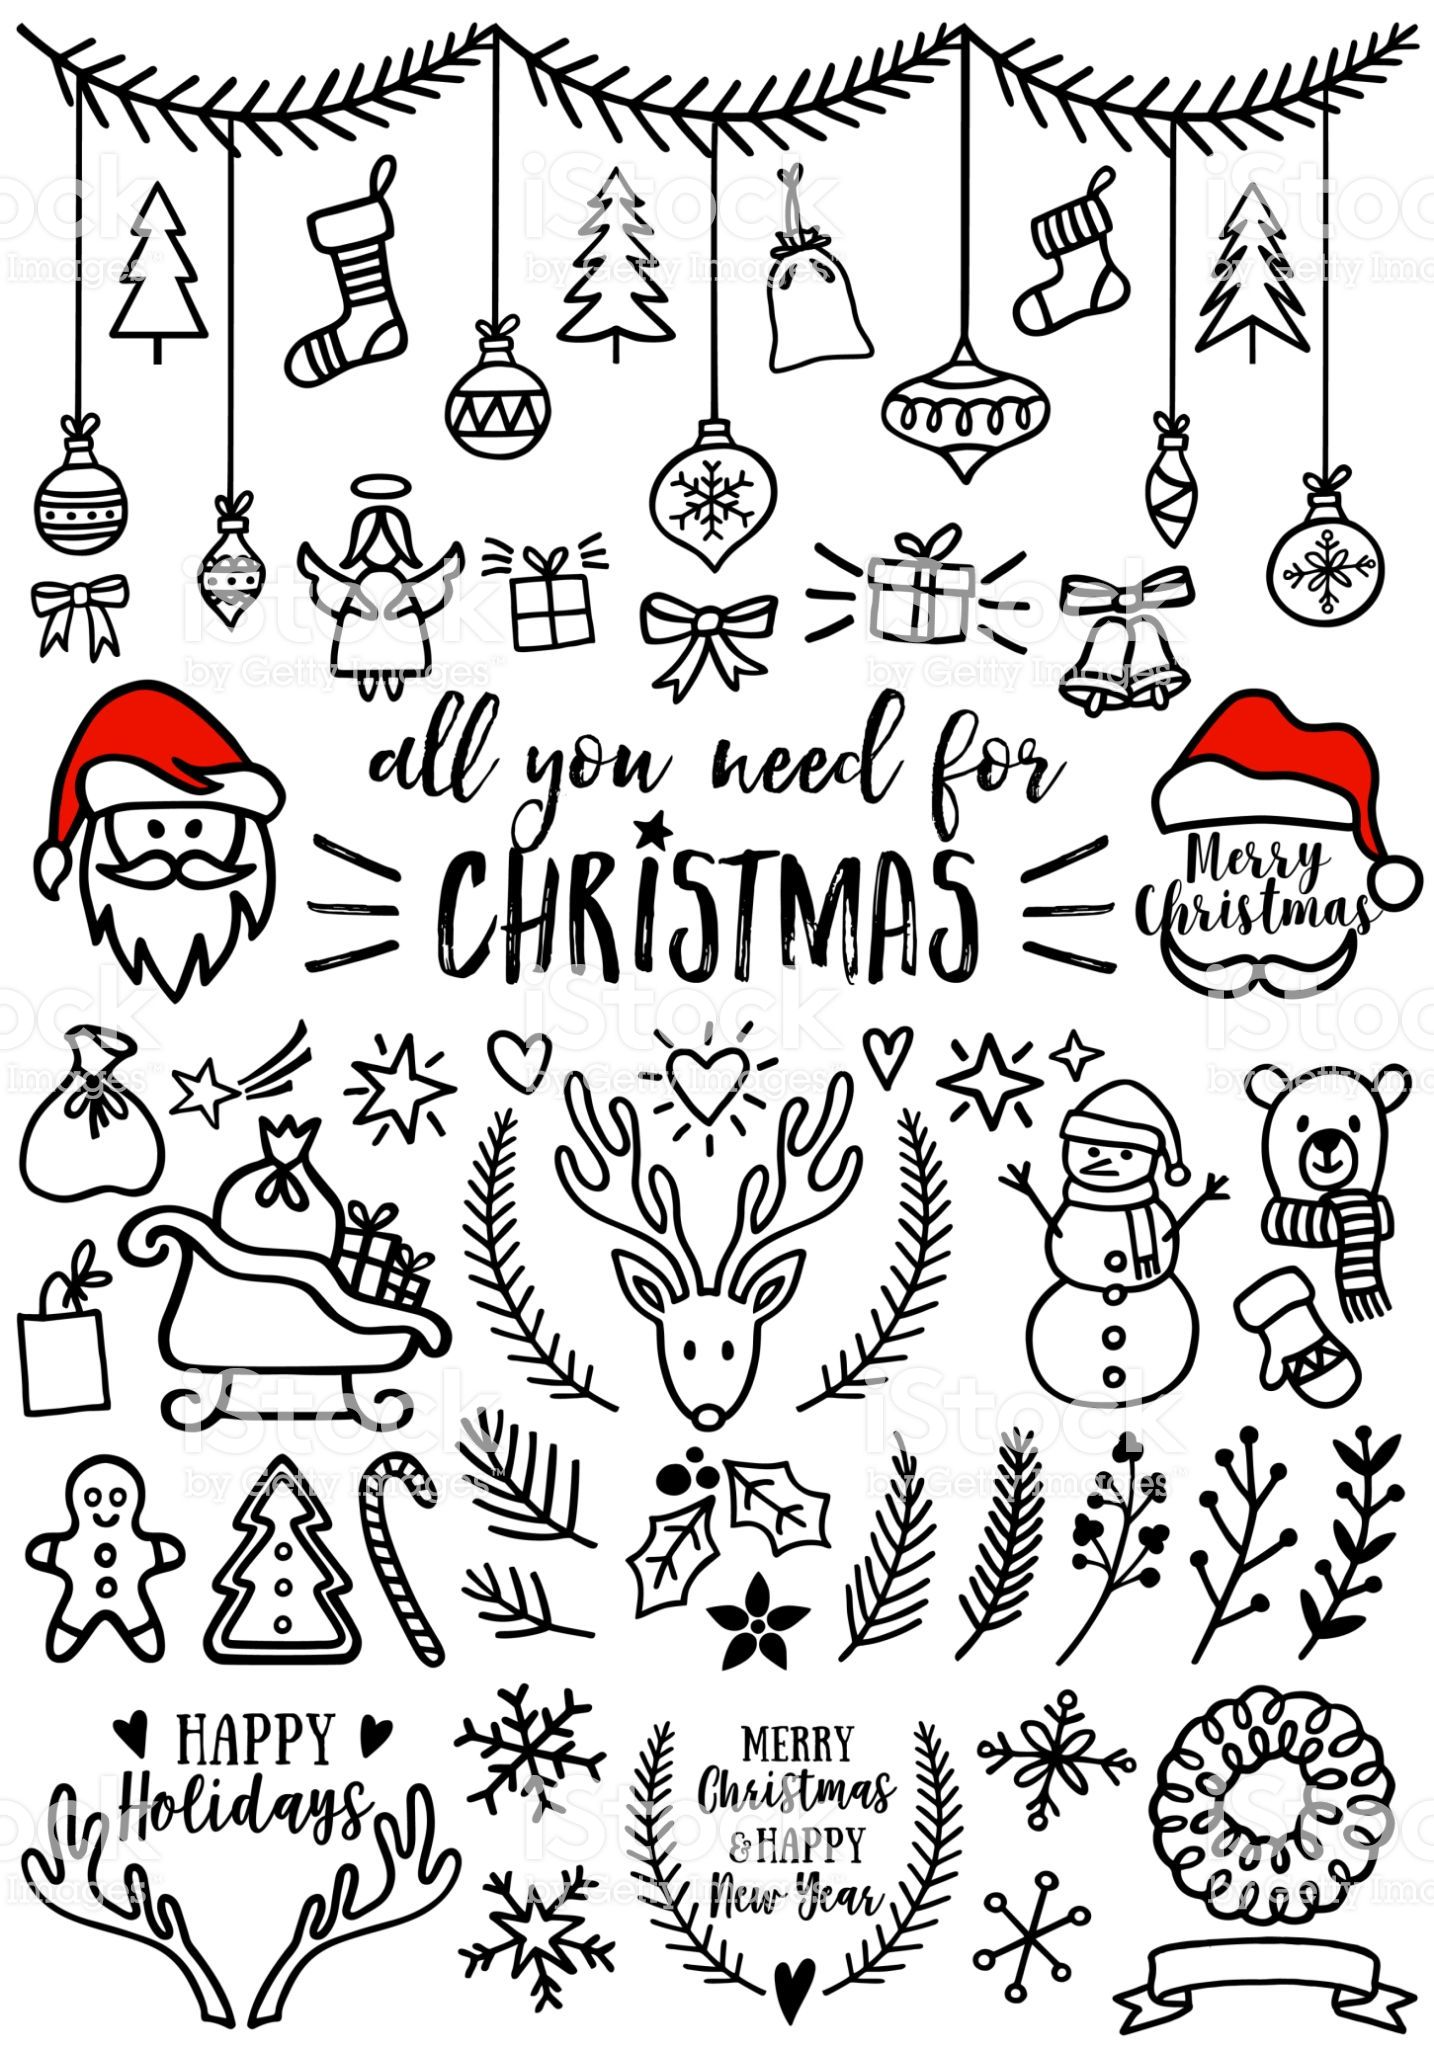 Vektor Bilder Hand Drawn Christmas Doodles For Cards Banners Set Of Vector